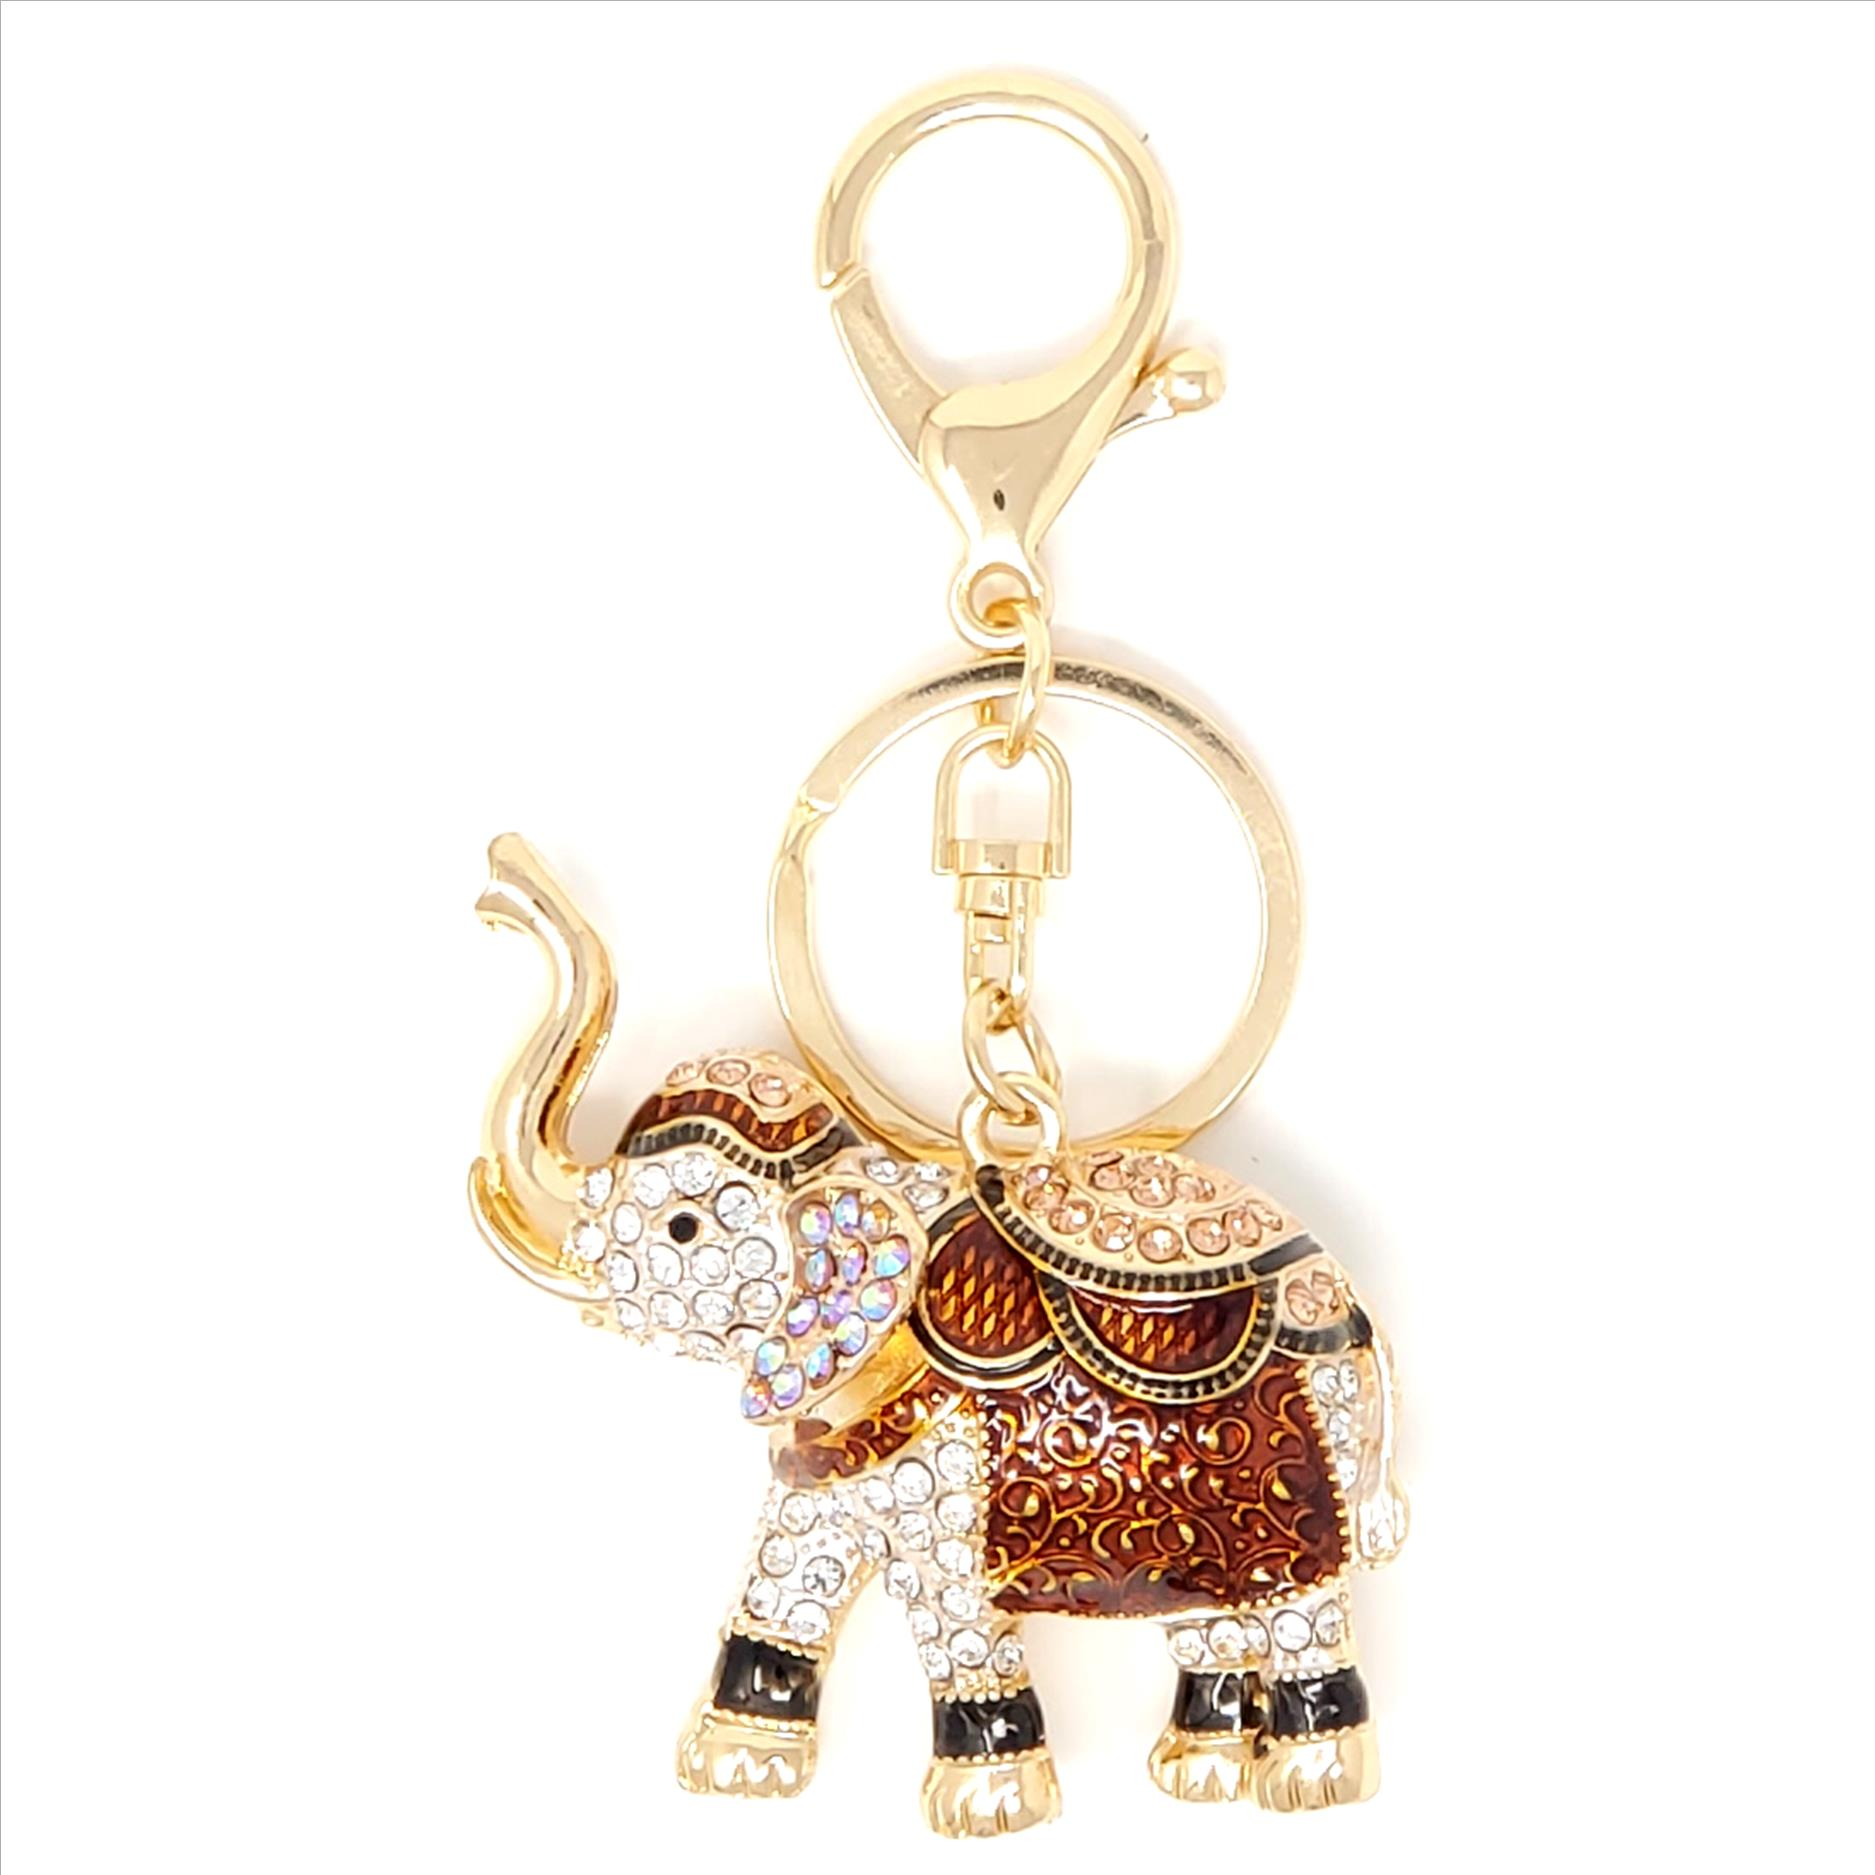 Crystal Elephant with Blanket Key Chain / Purse Charm